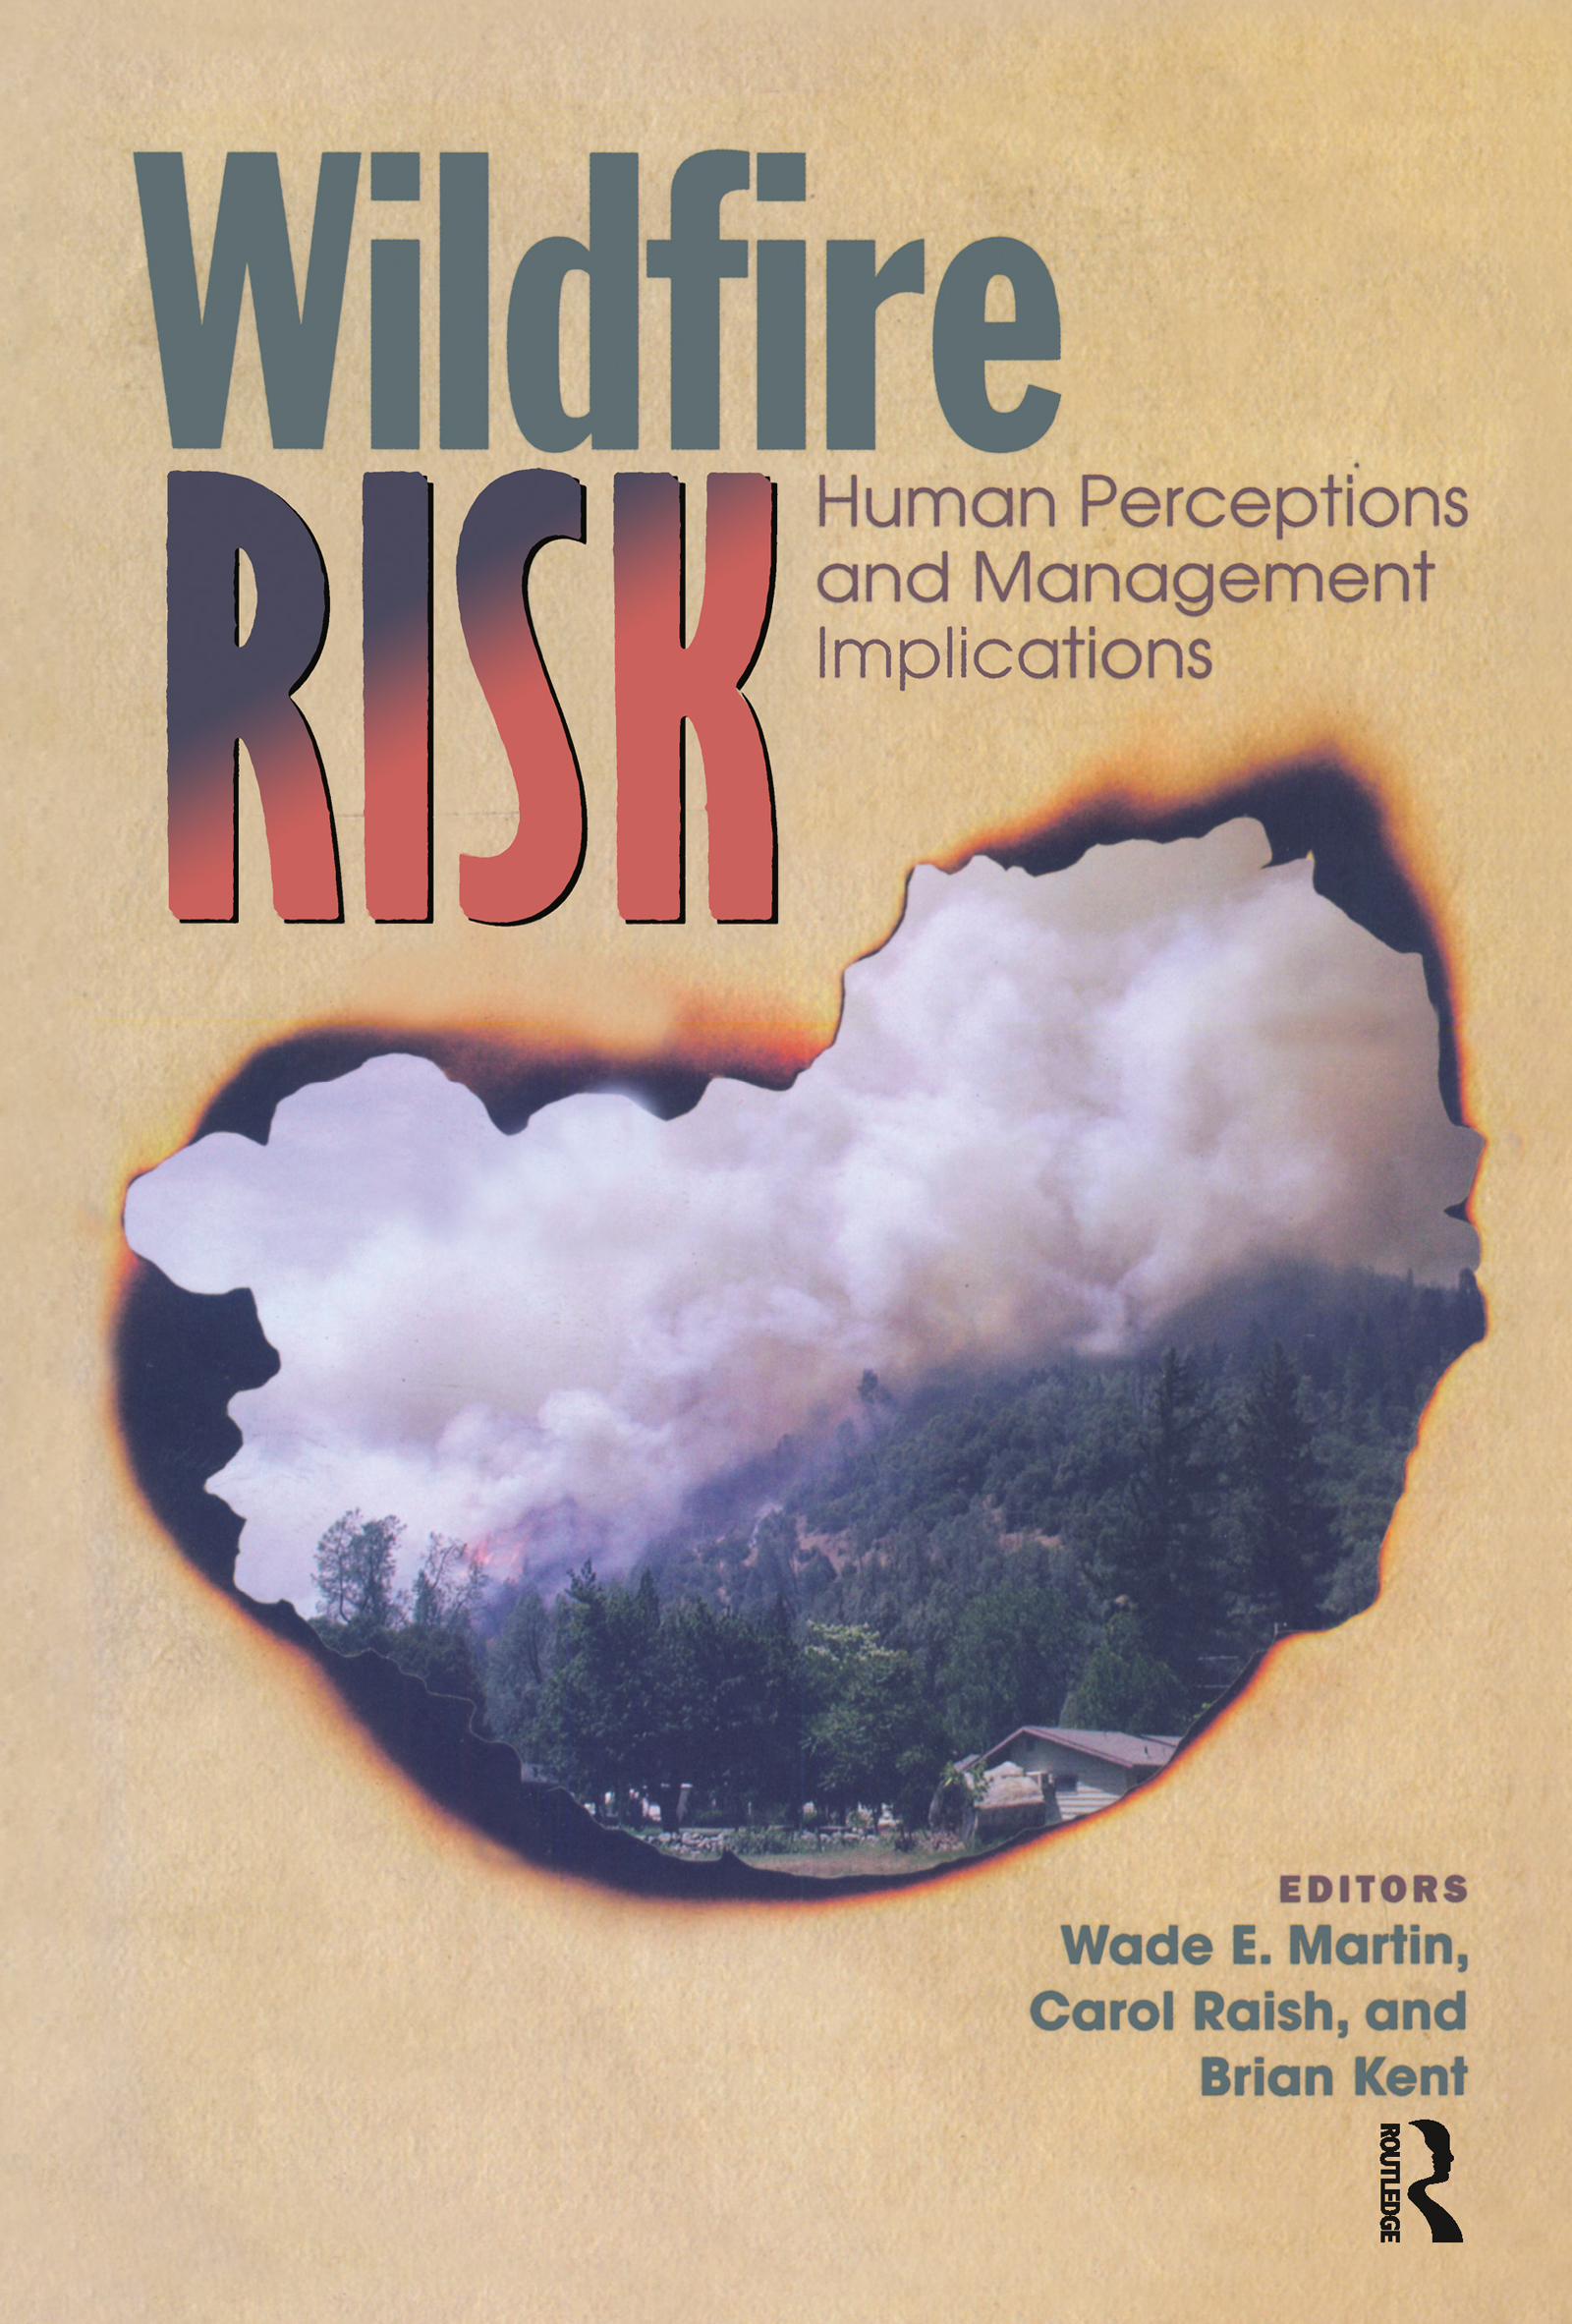 Wildfire Risk: Human Perceptions and Management Implications book cover